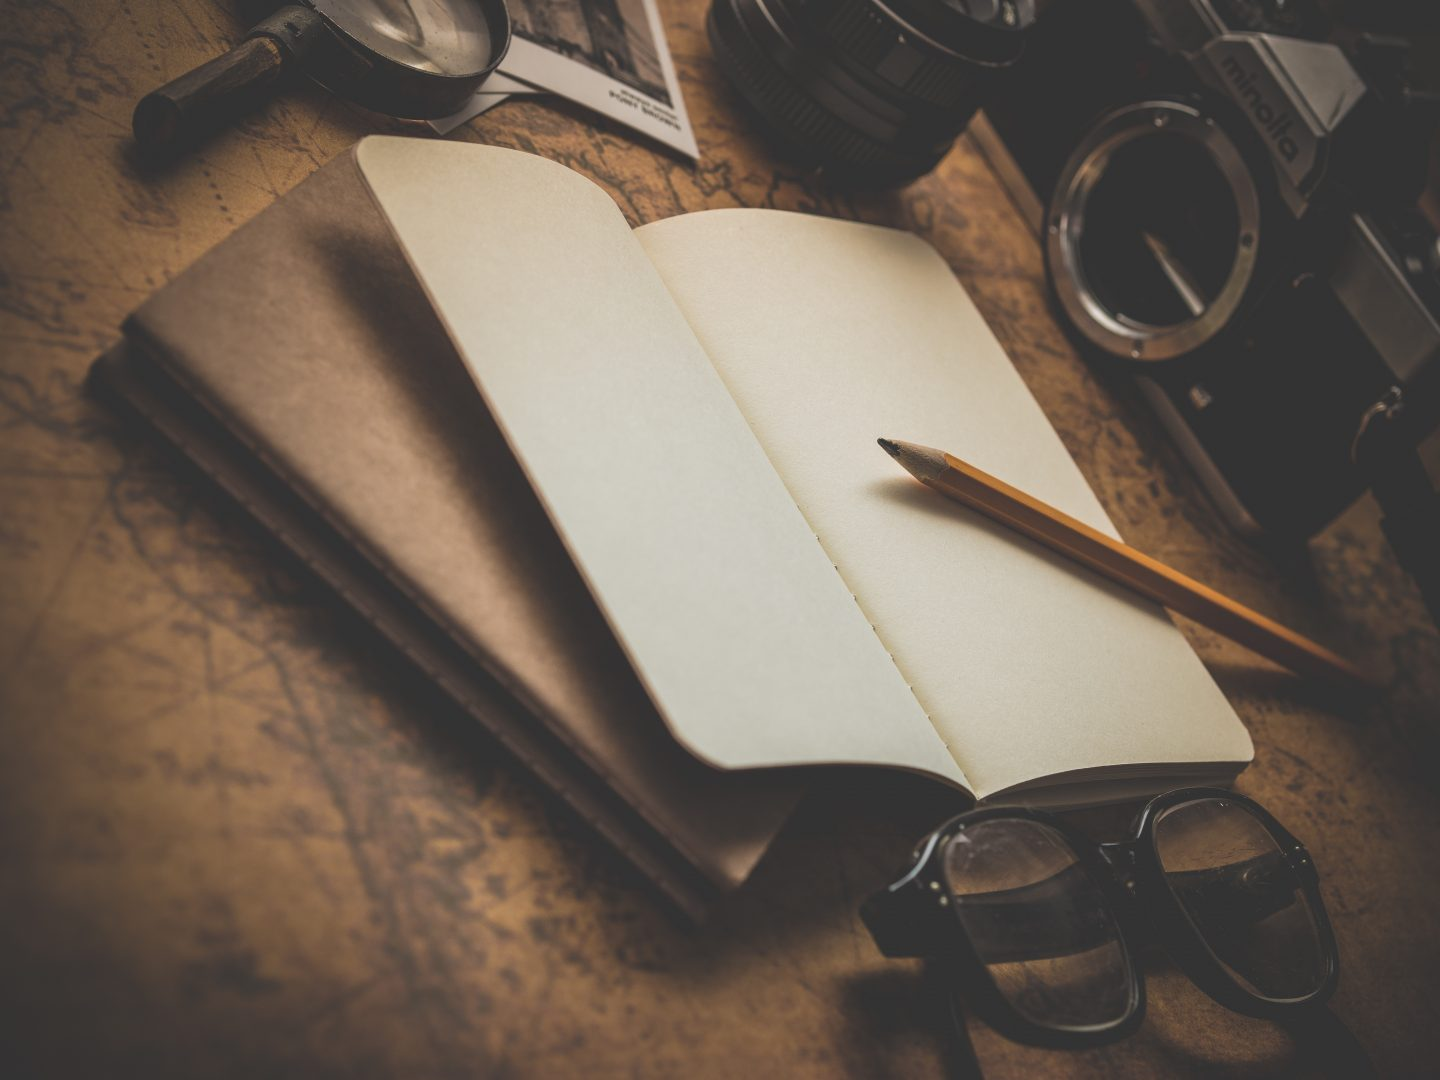 unsplash, notepad, pencil, camera, adventure, planning, trip